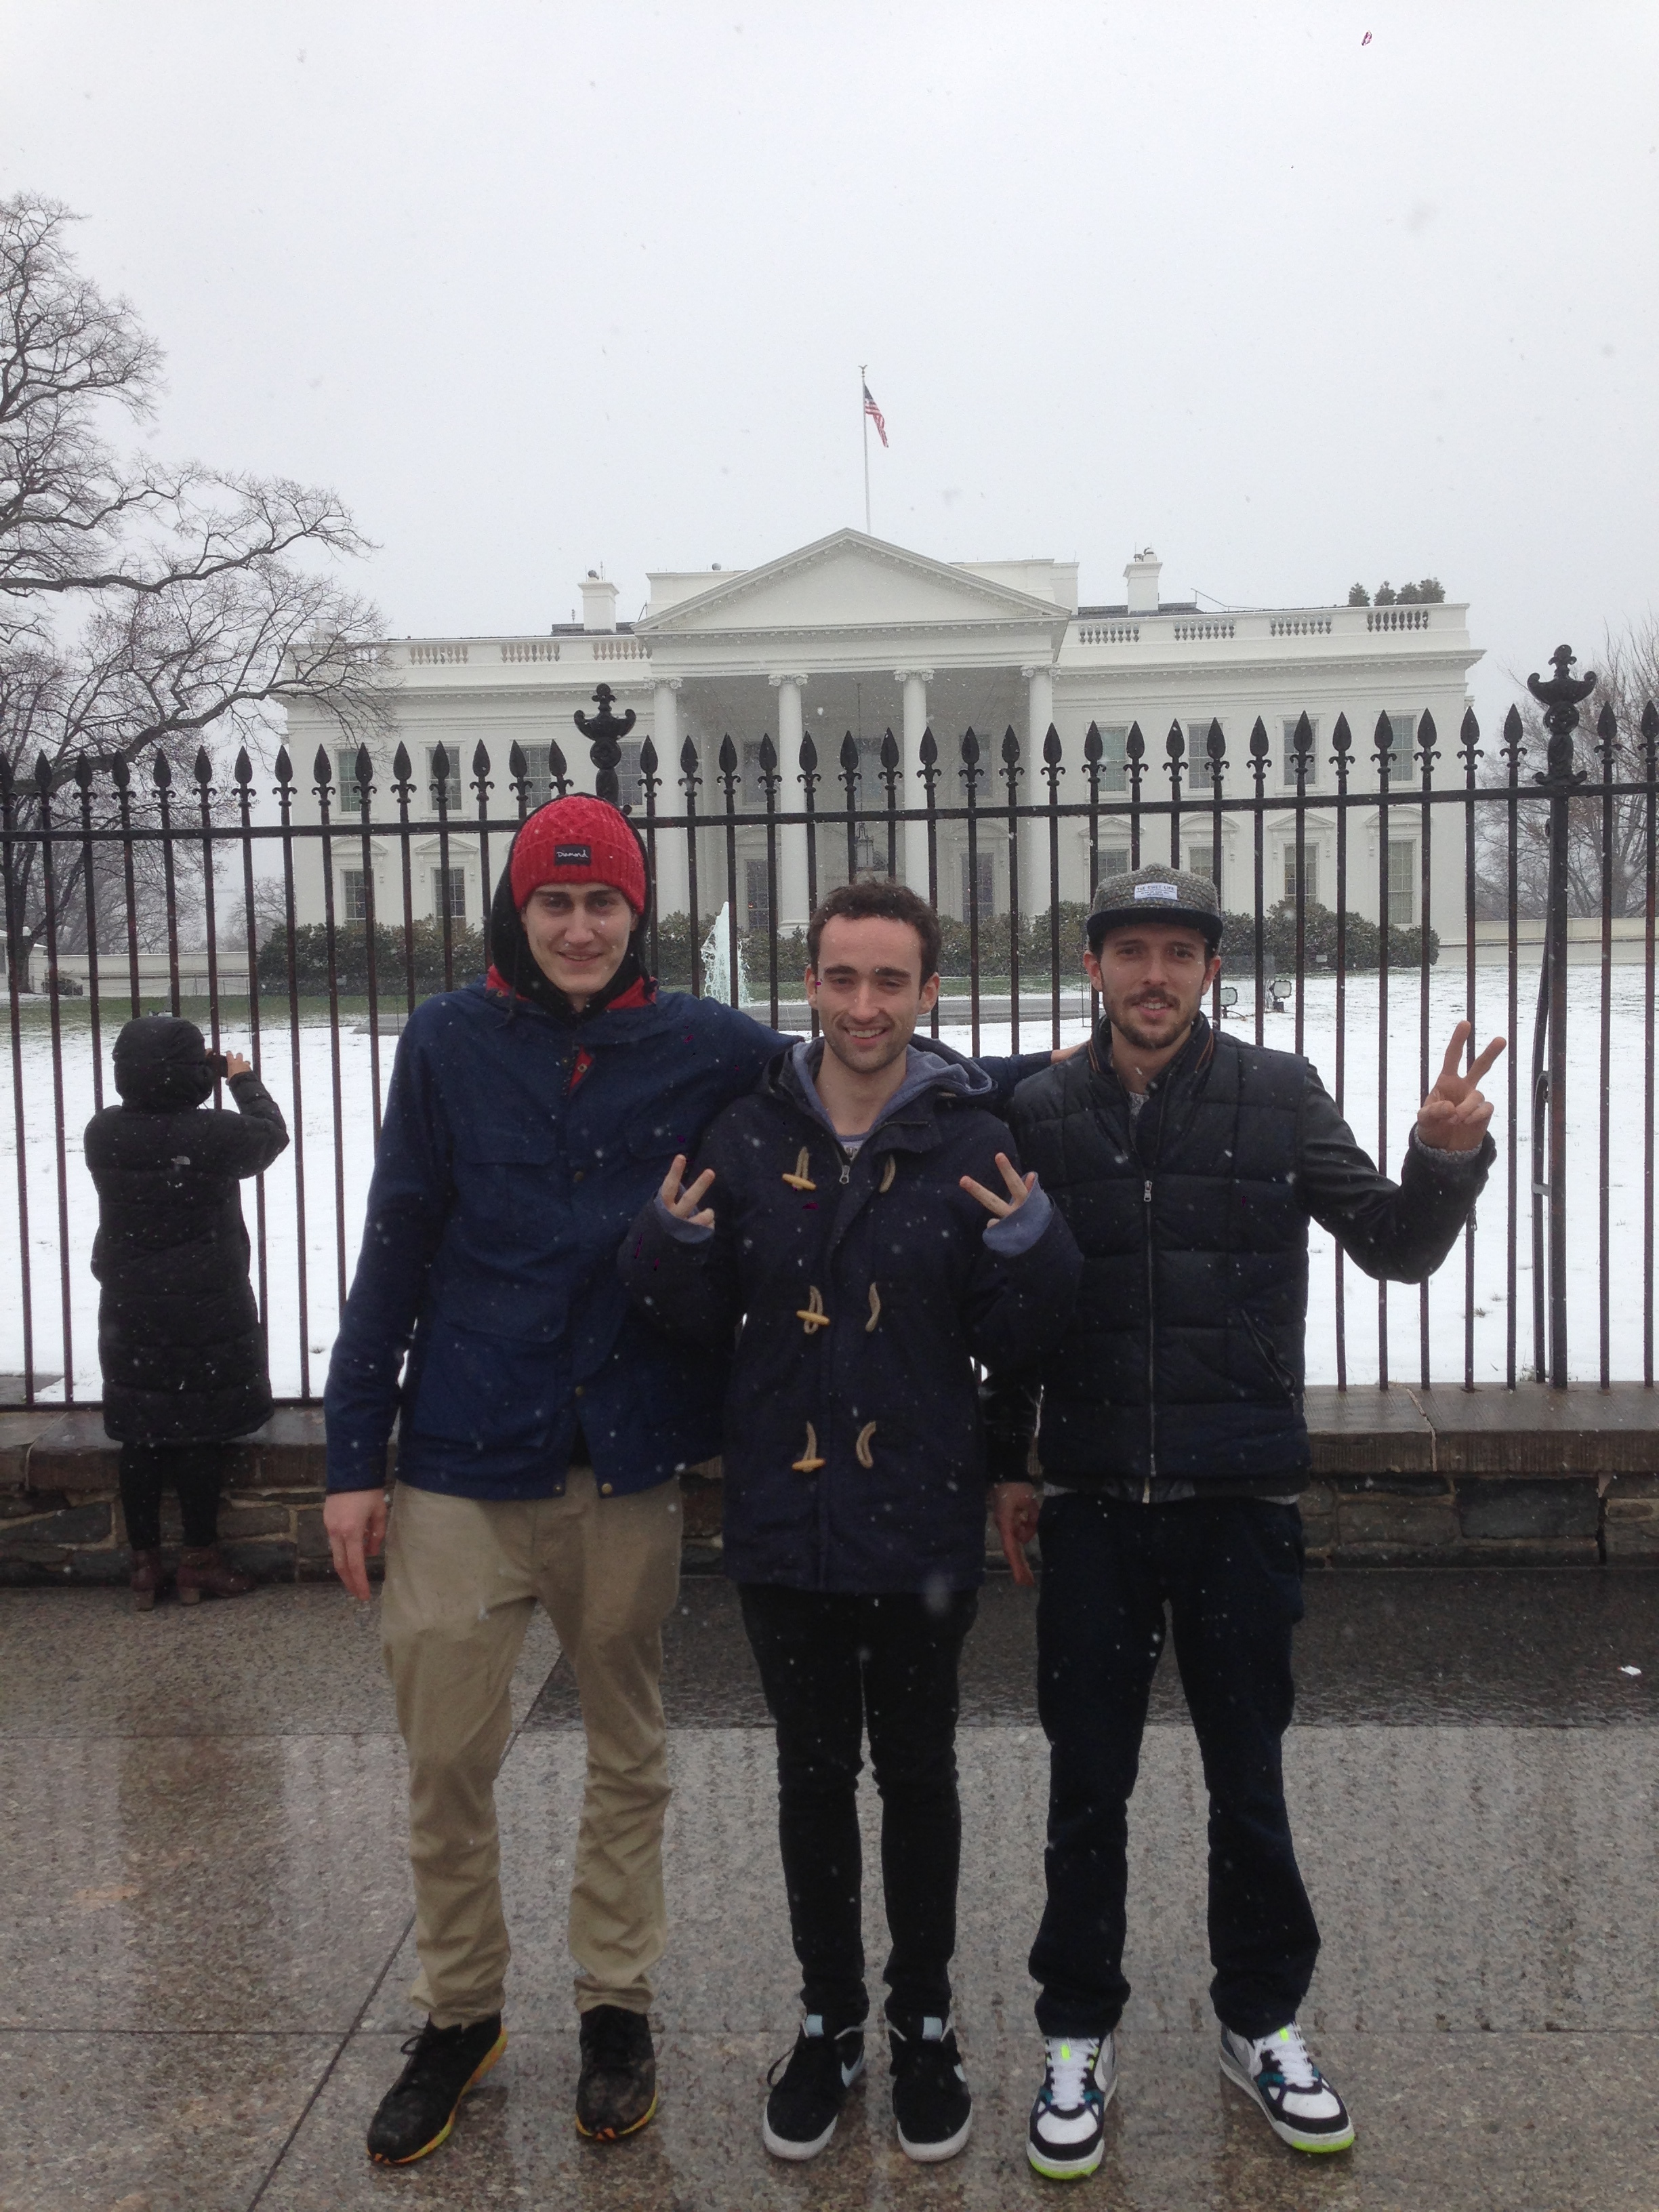 SQUAD PIC: Blaise Railey and Waveracer (first time at in DC)